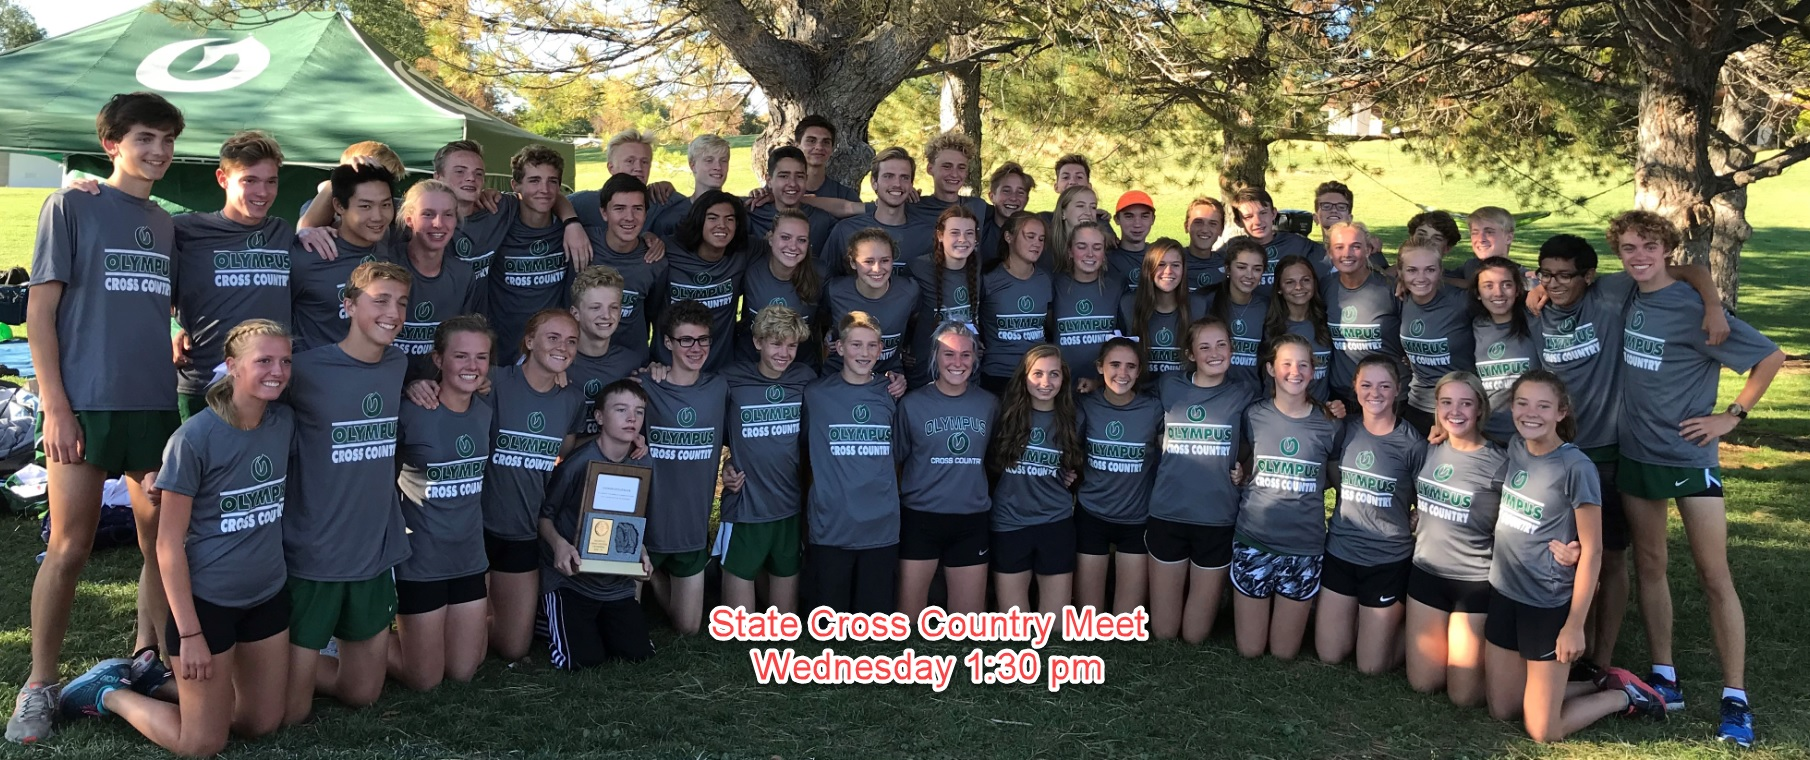 State Cross Country Meet, Wednesday at Sugar House Park